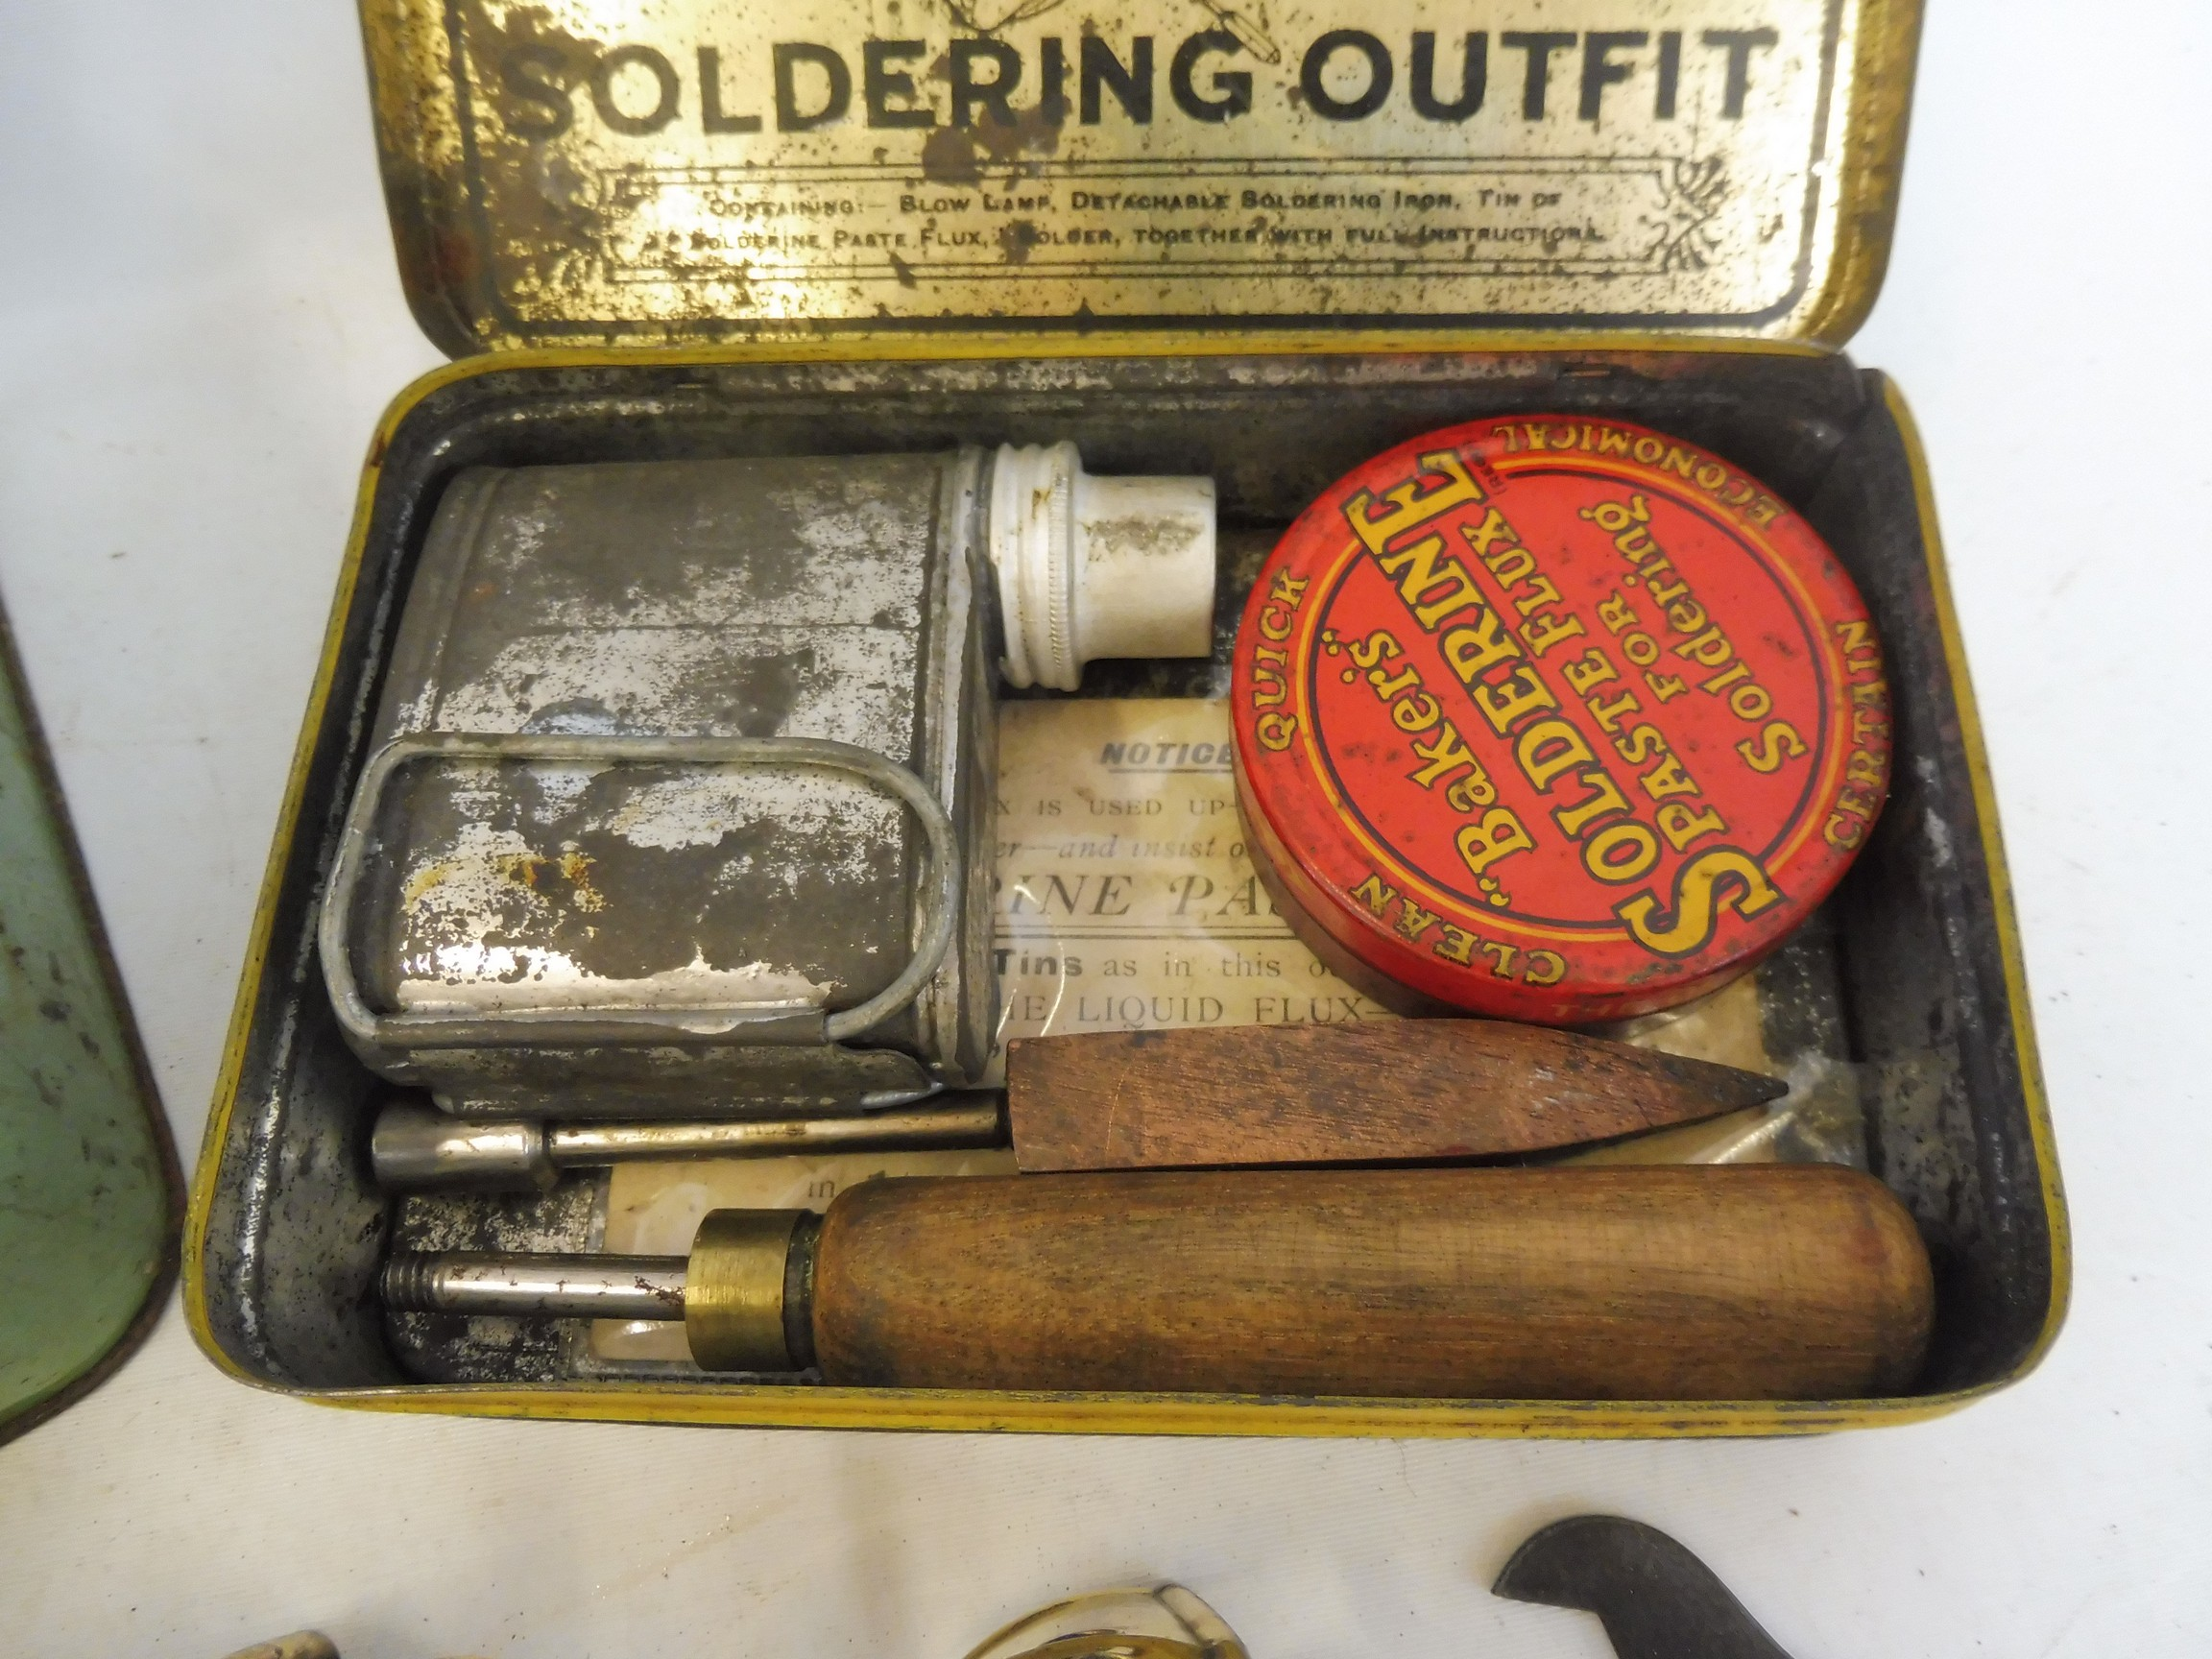 A Burmos polished brass No. 21 paraffin pressure stove outfit and a soldering outfit in original - Image 3 of 5